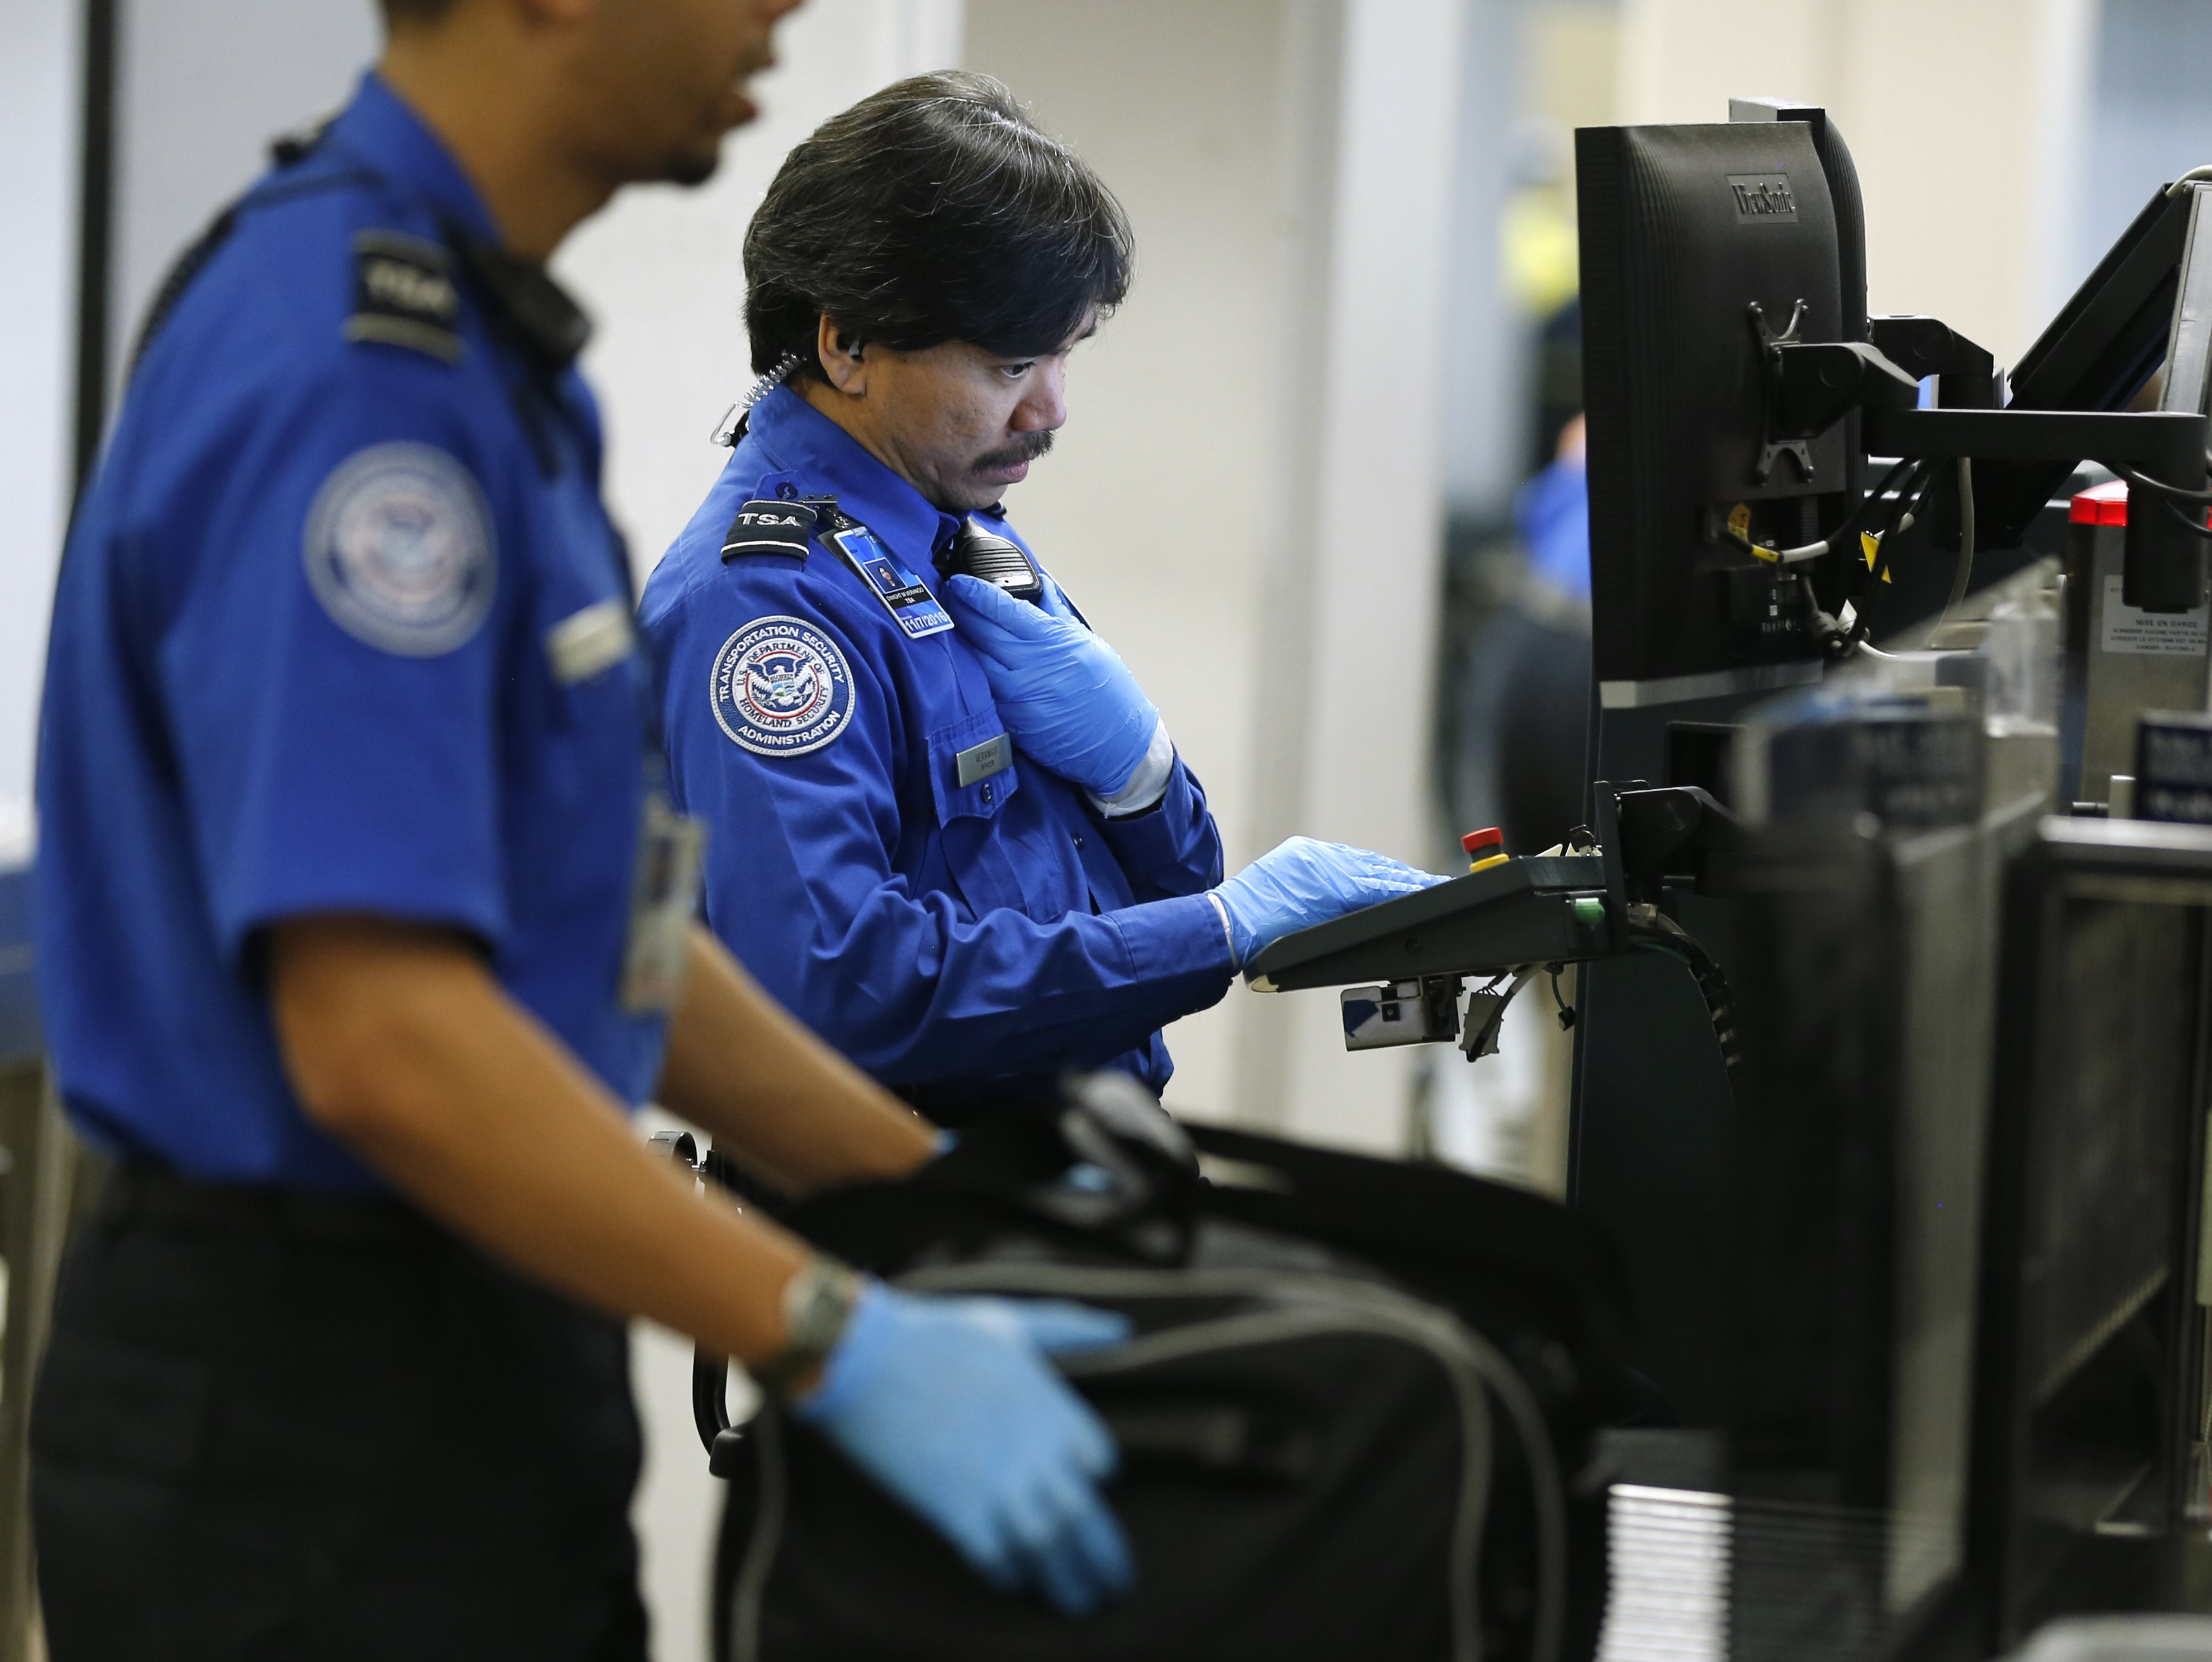 Sneak Through Airport Security facts